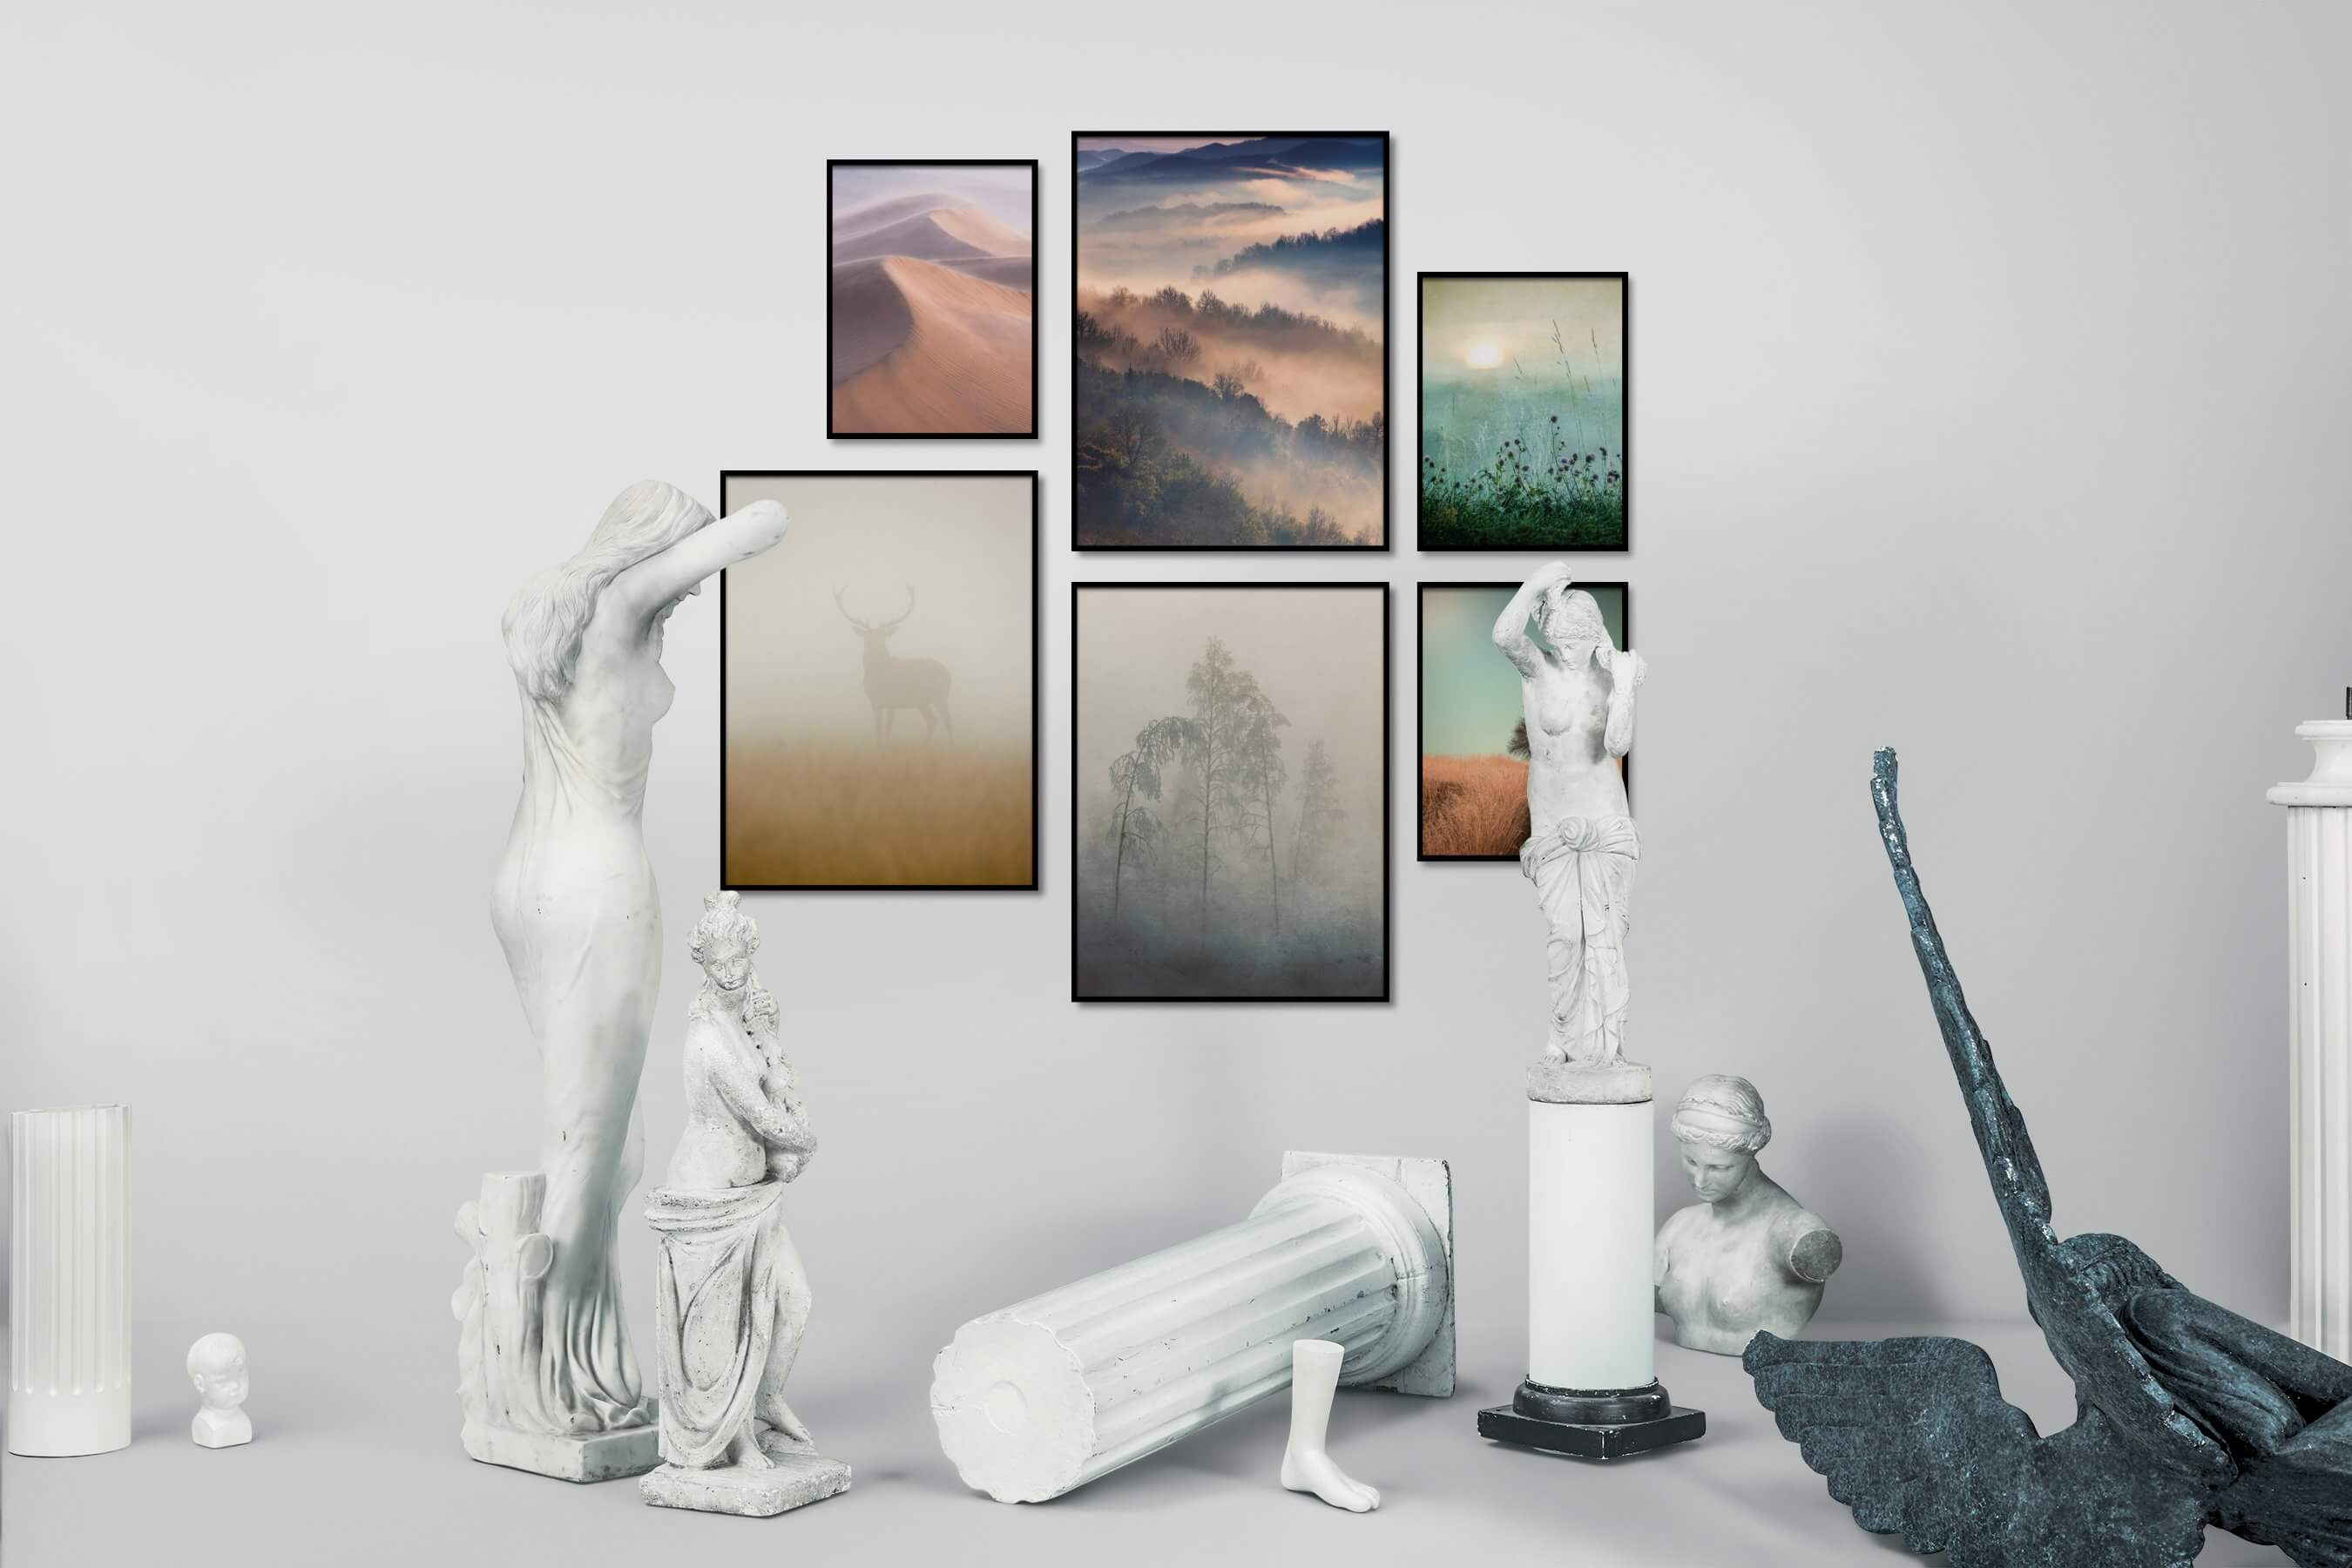 Gallery wall idea with six framed pictures arranged on a wall depicting For the Moderate, Nature, Mindfulness, For the Minimalist, Animals, Flowers & Plants, Vintage, and Country Life